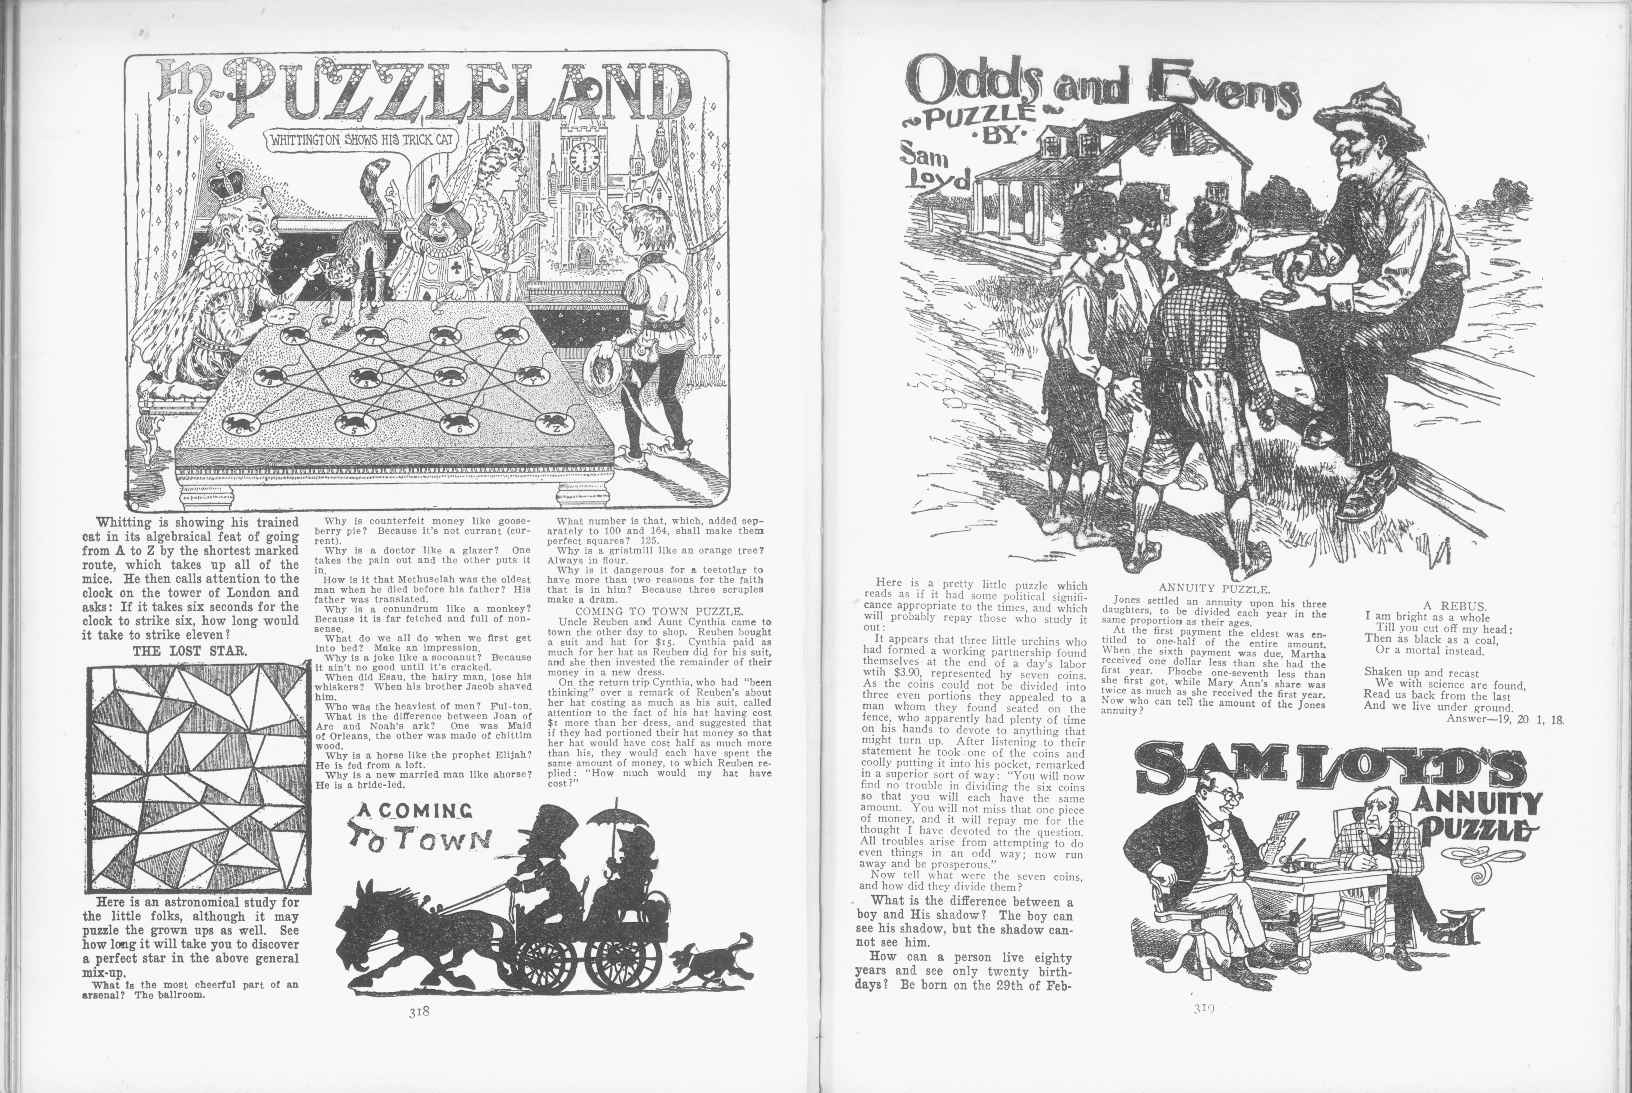 Sam Loyd - Cyclopedia of Puzzles - page 318-319